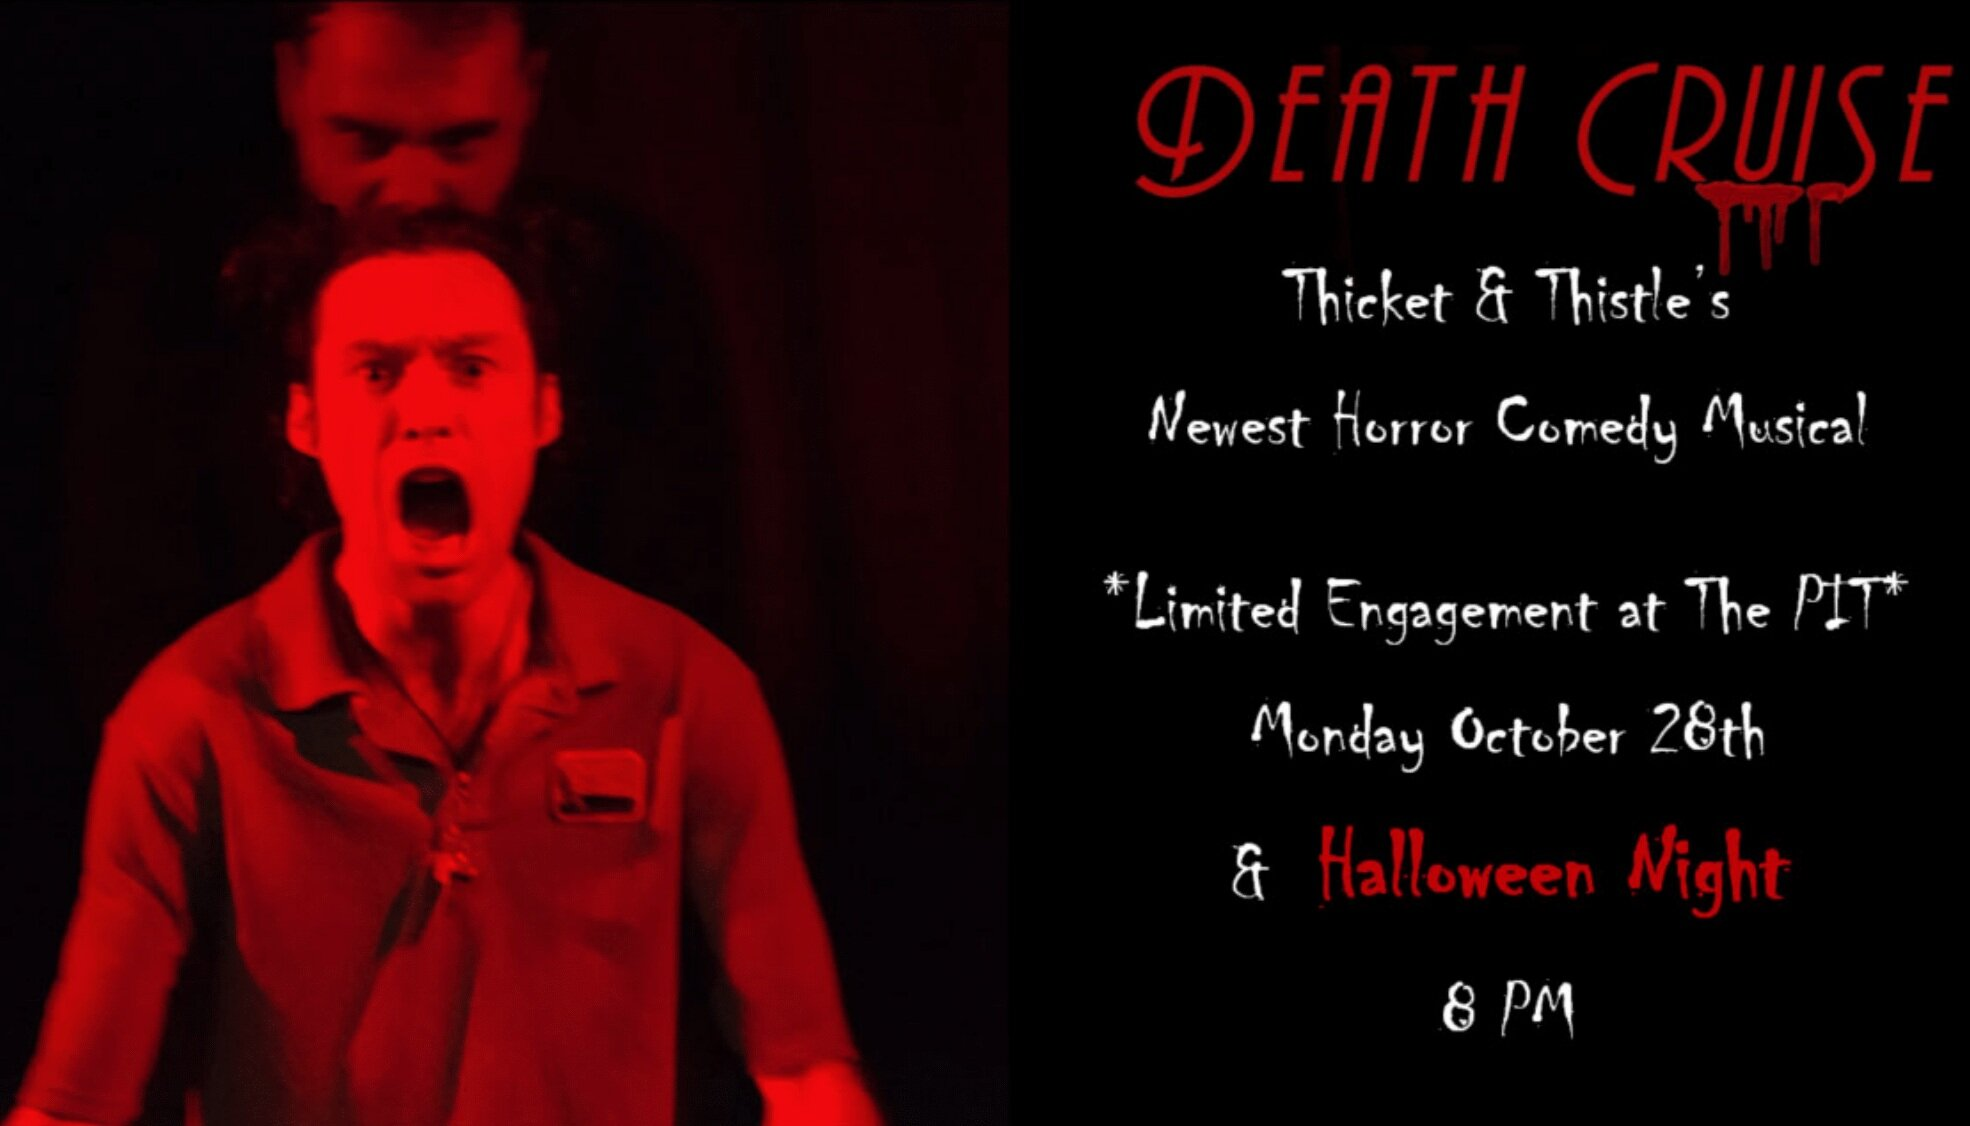 Death Cruise at the PIT - What could be scarier on Halloween than a horror musical? Join T&T at the Peoples Improv Theater!